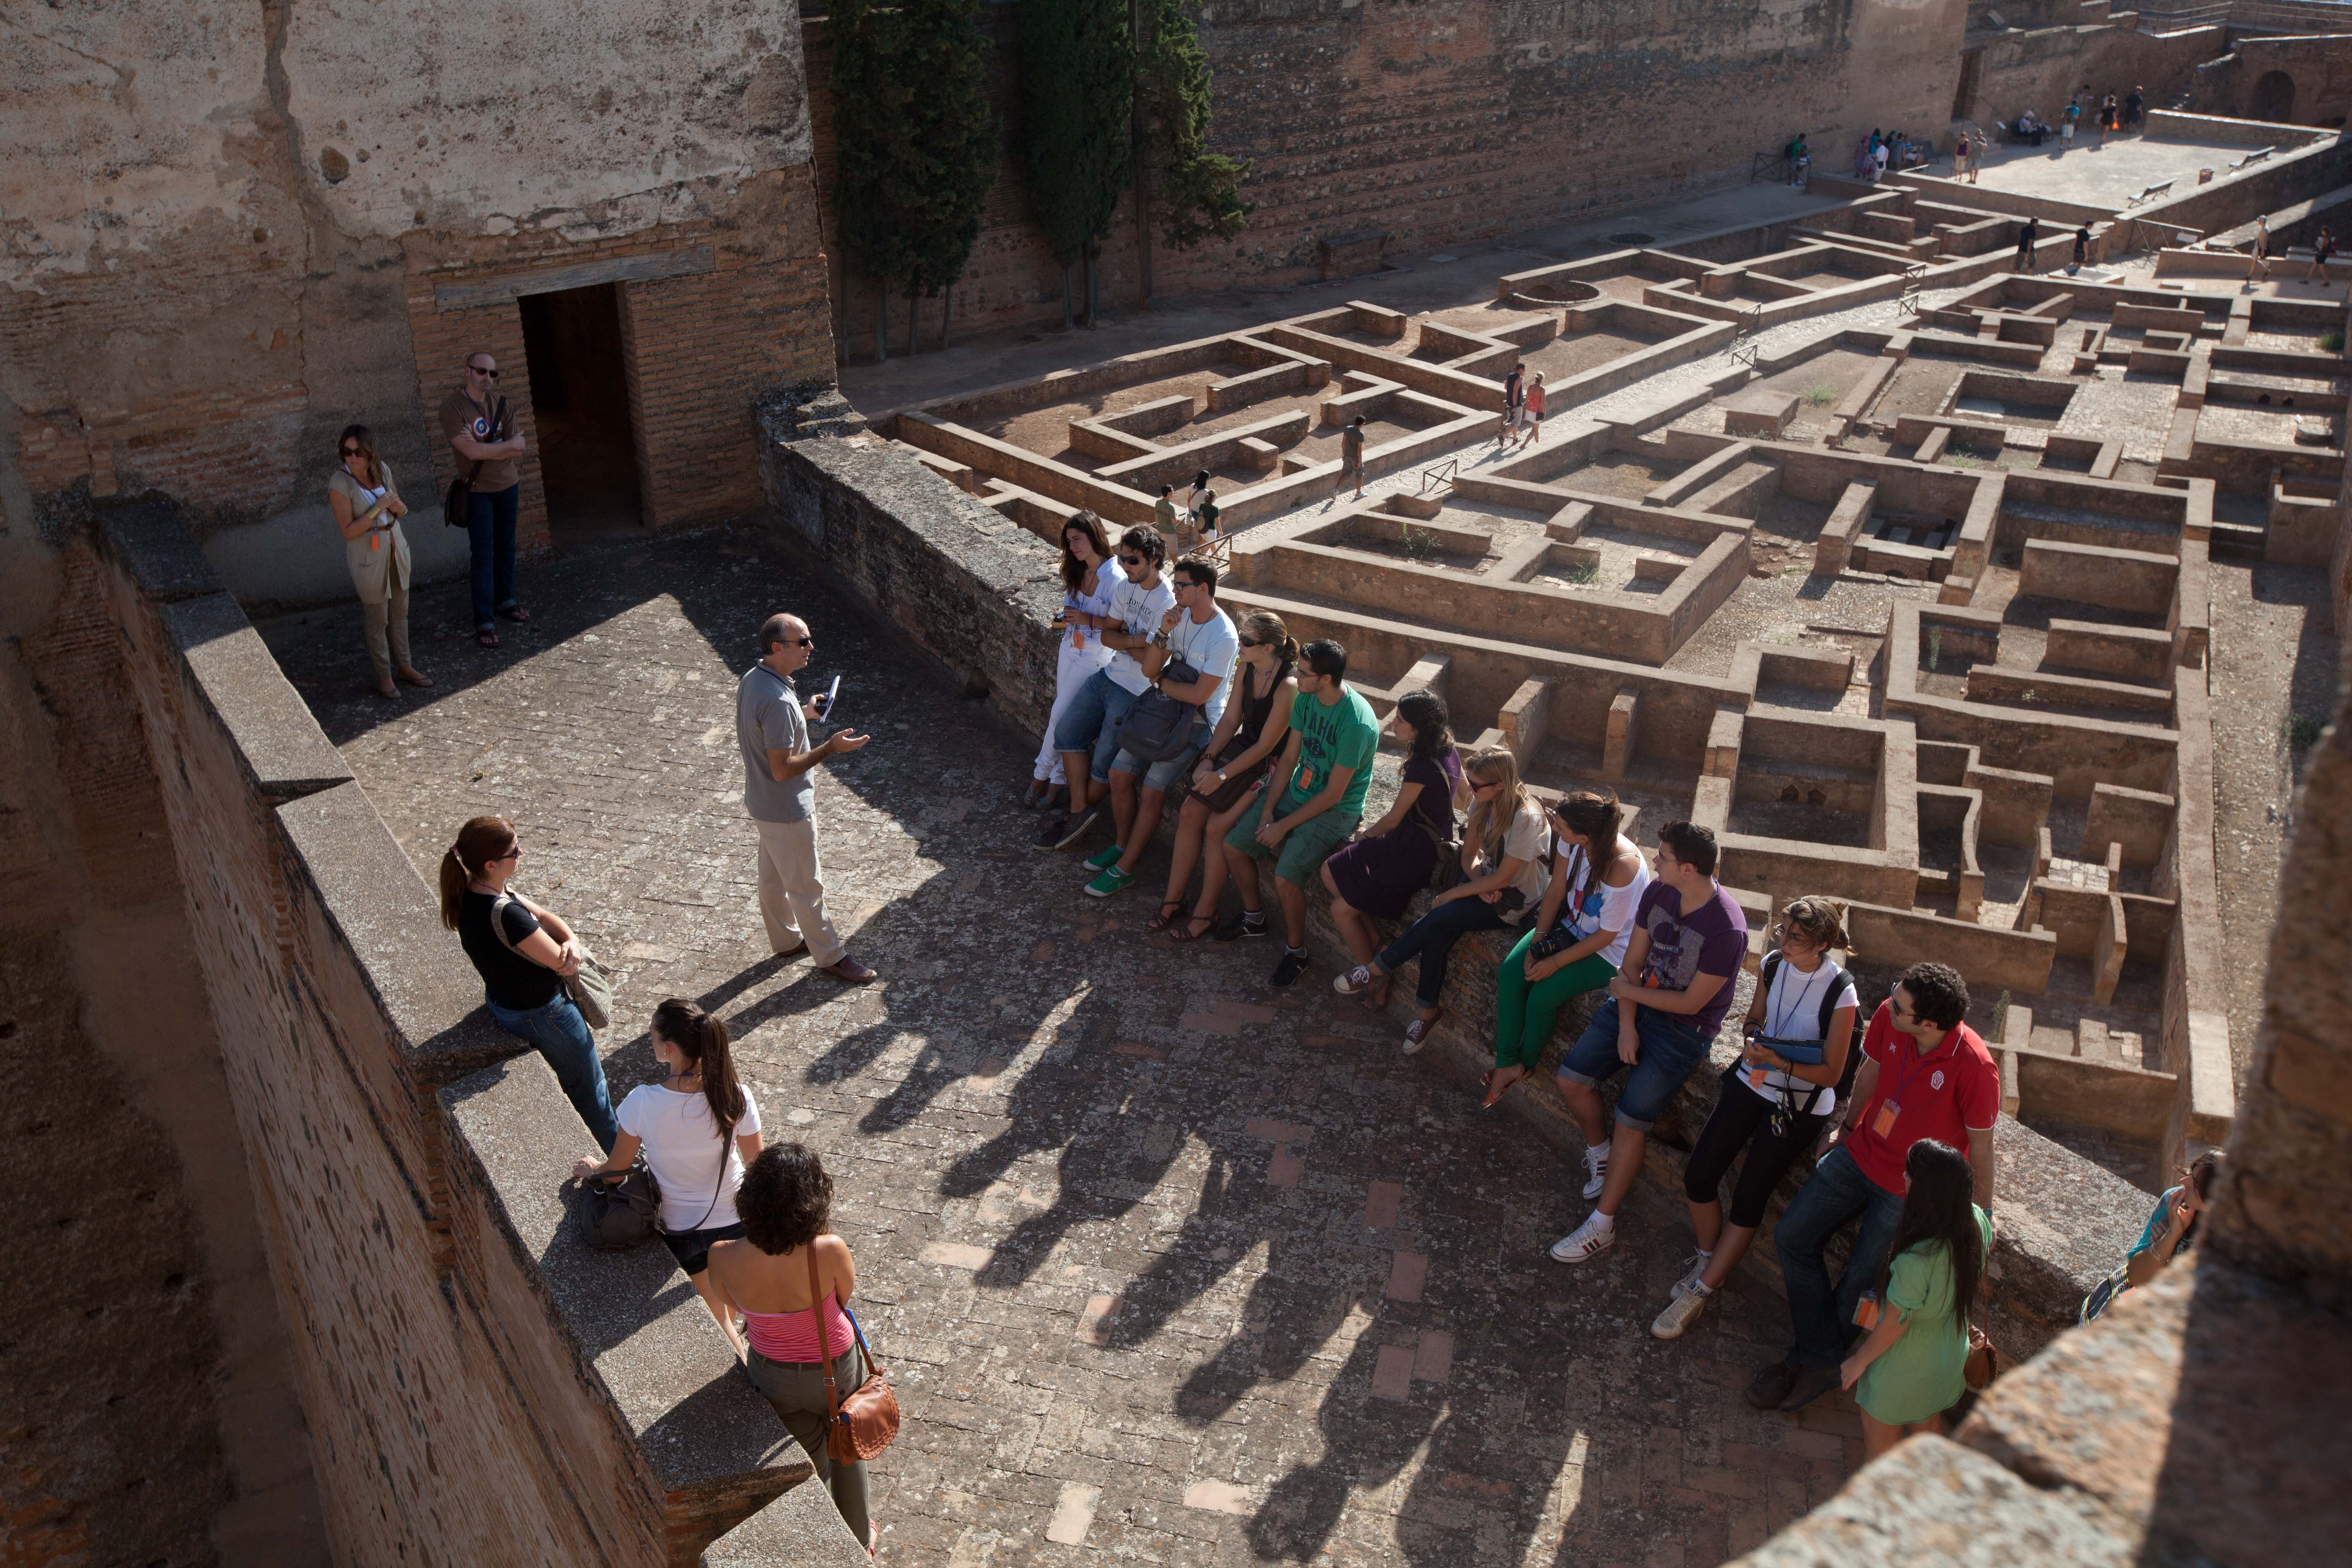 The Alhambra offers guided visits for people from Granada and other local residents every Sunday.